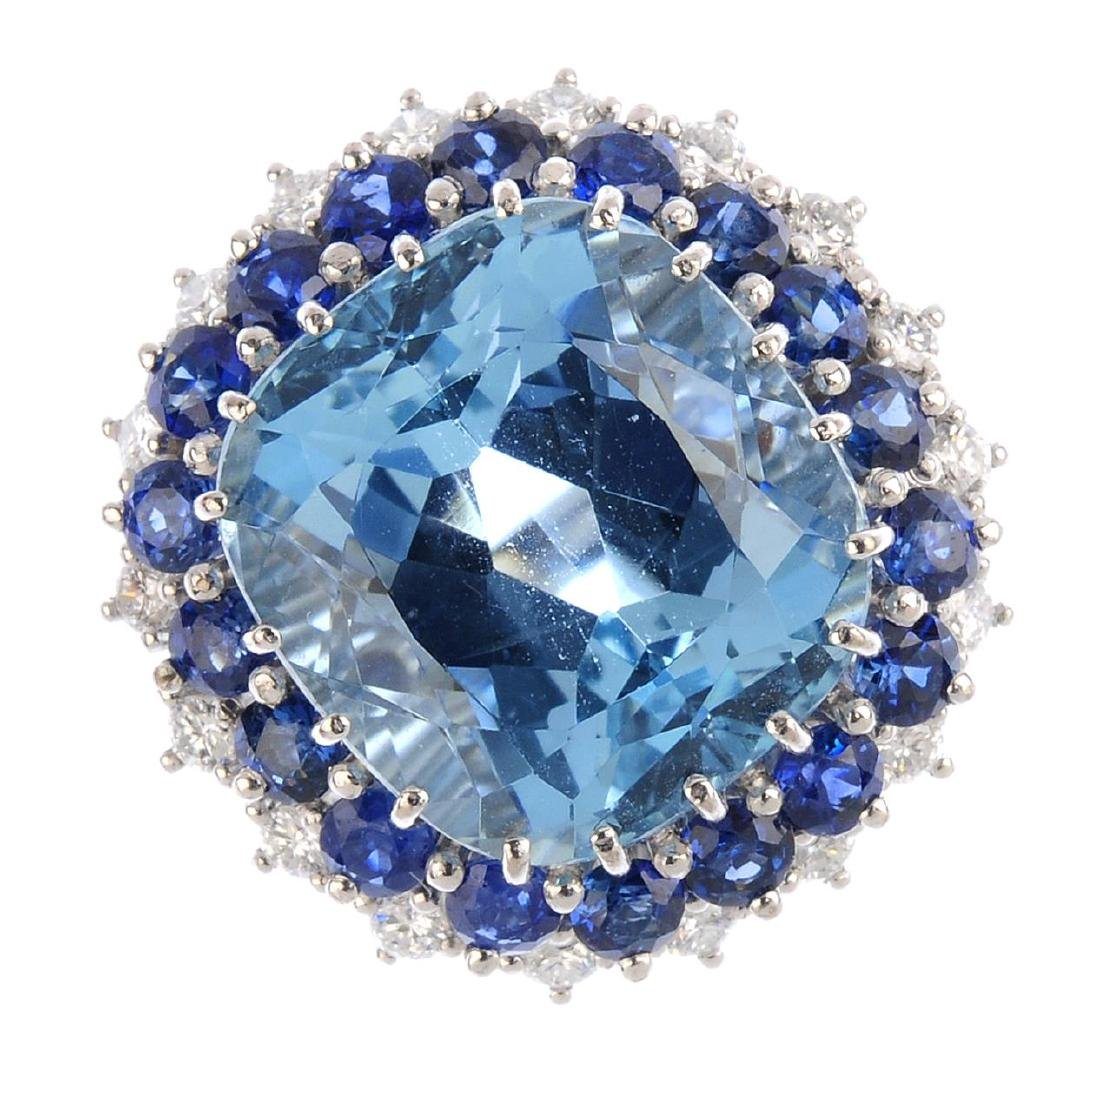 An aquamarine, sapphire and diamond cluster ring. The